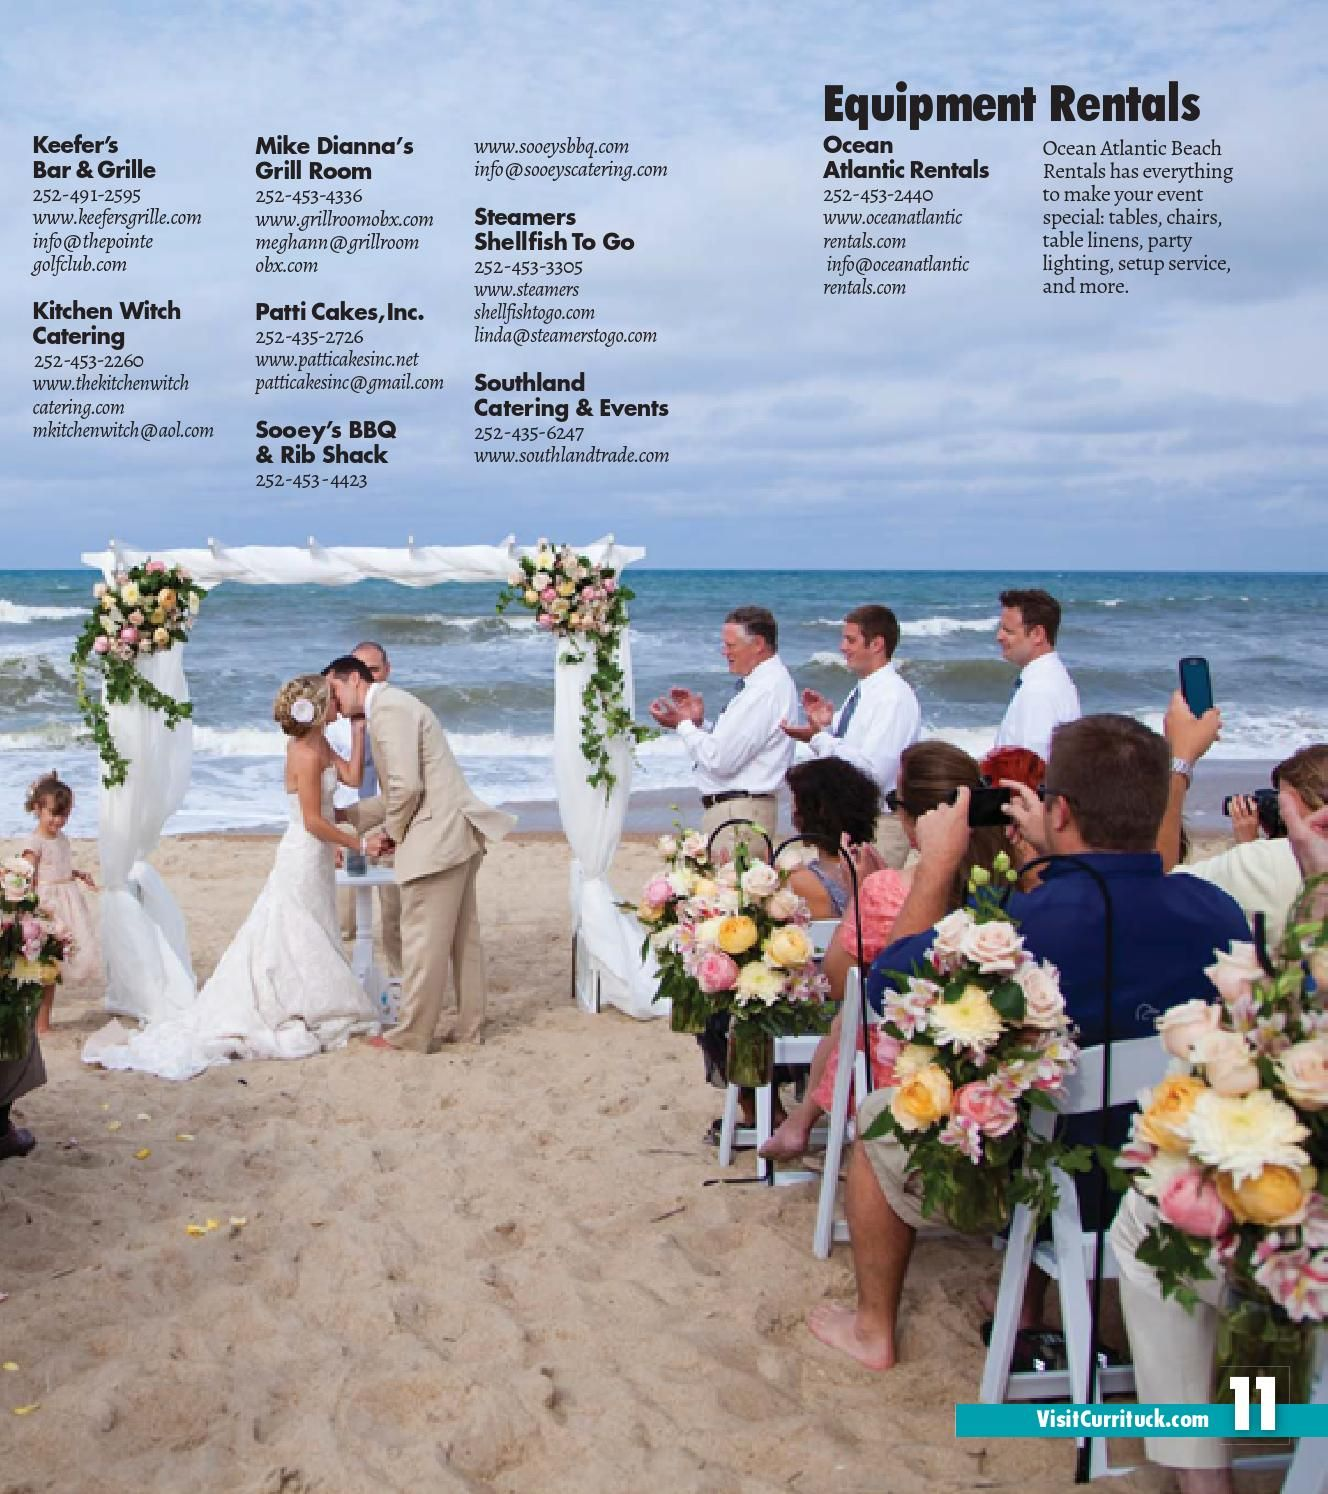 Currituck OBX Wedding Planner Wedding planners Planners and